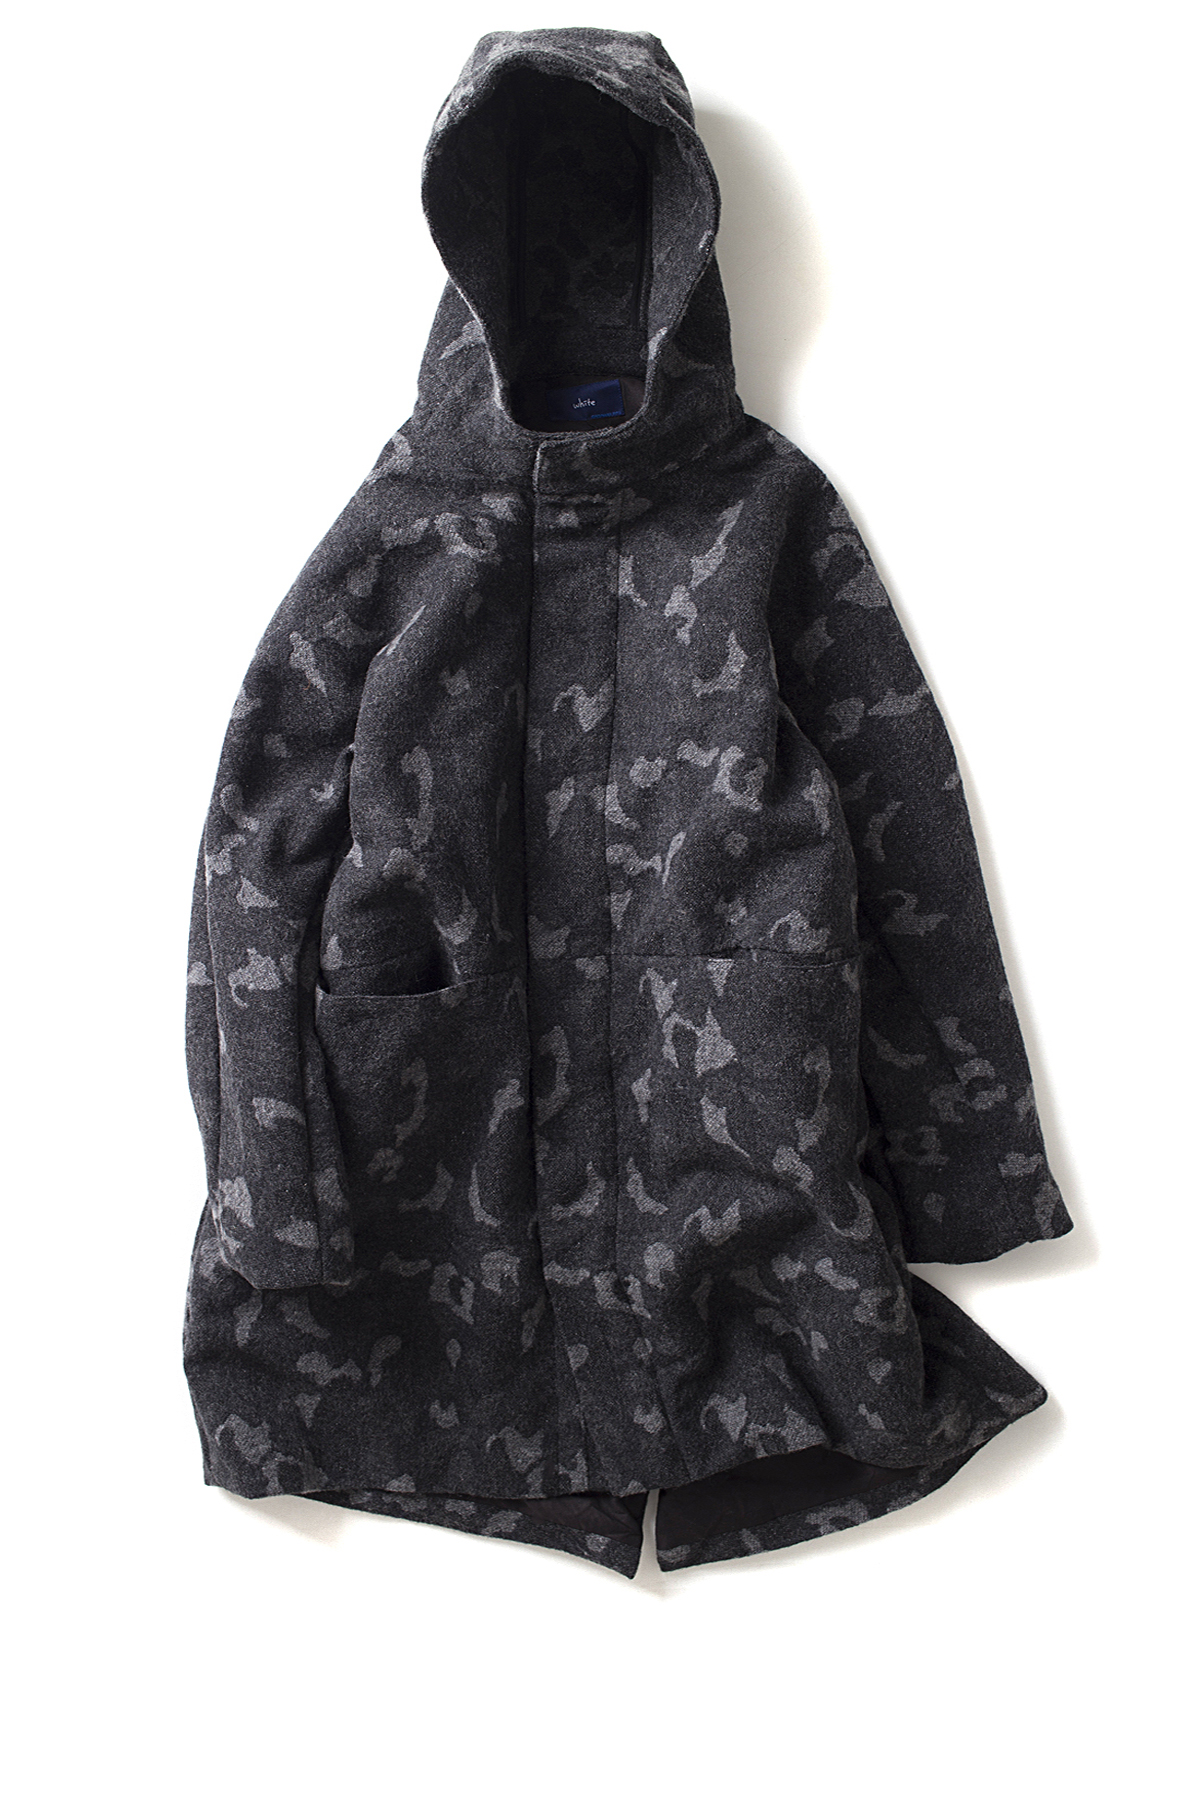 ordinary fits #WHITE : Camo Field Parka (Black)